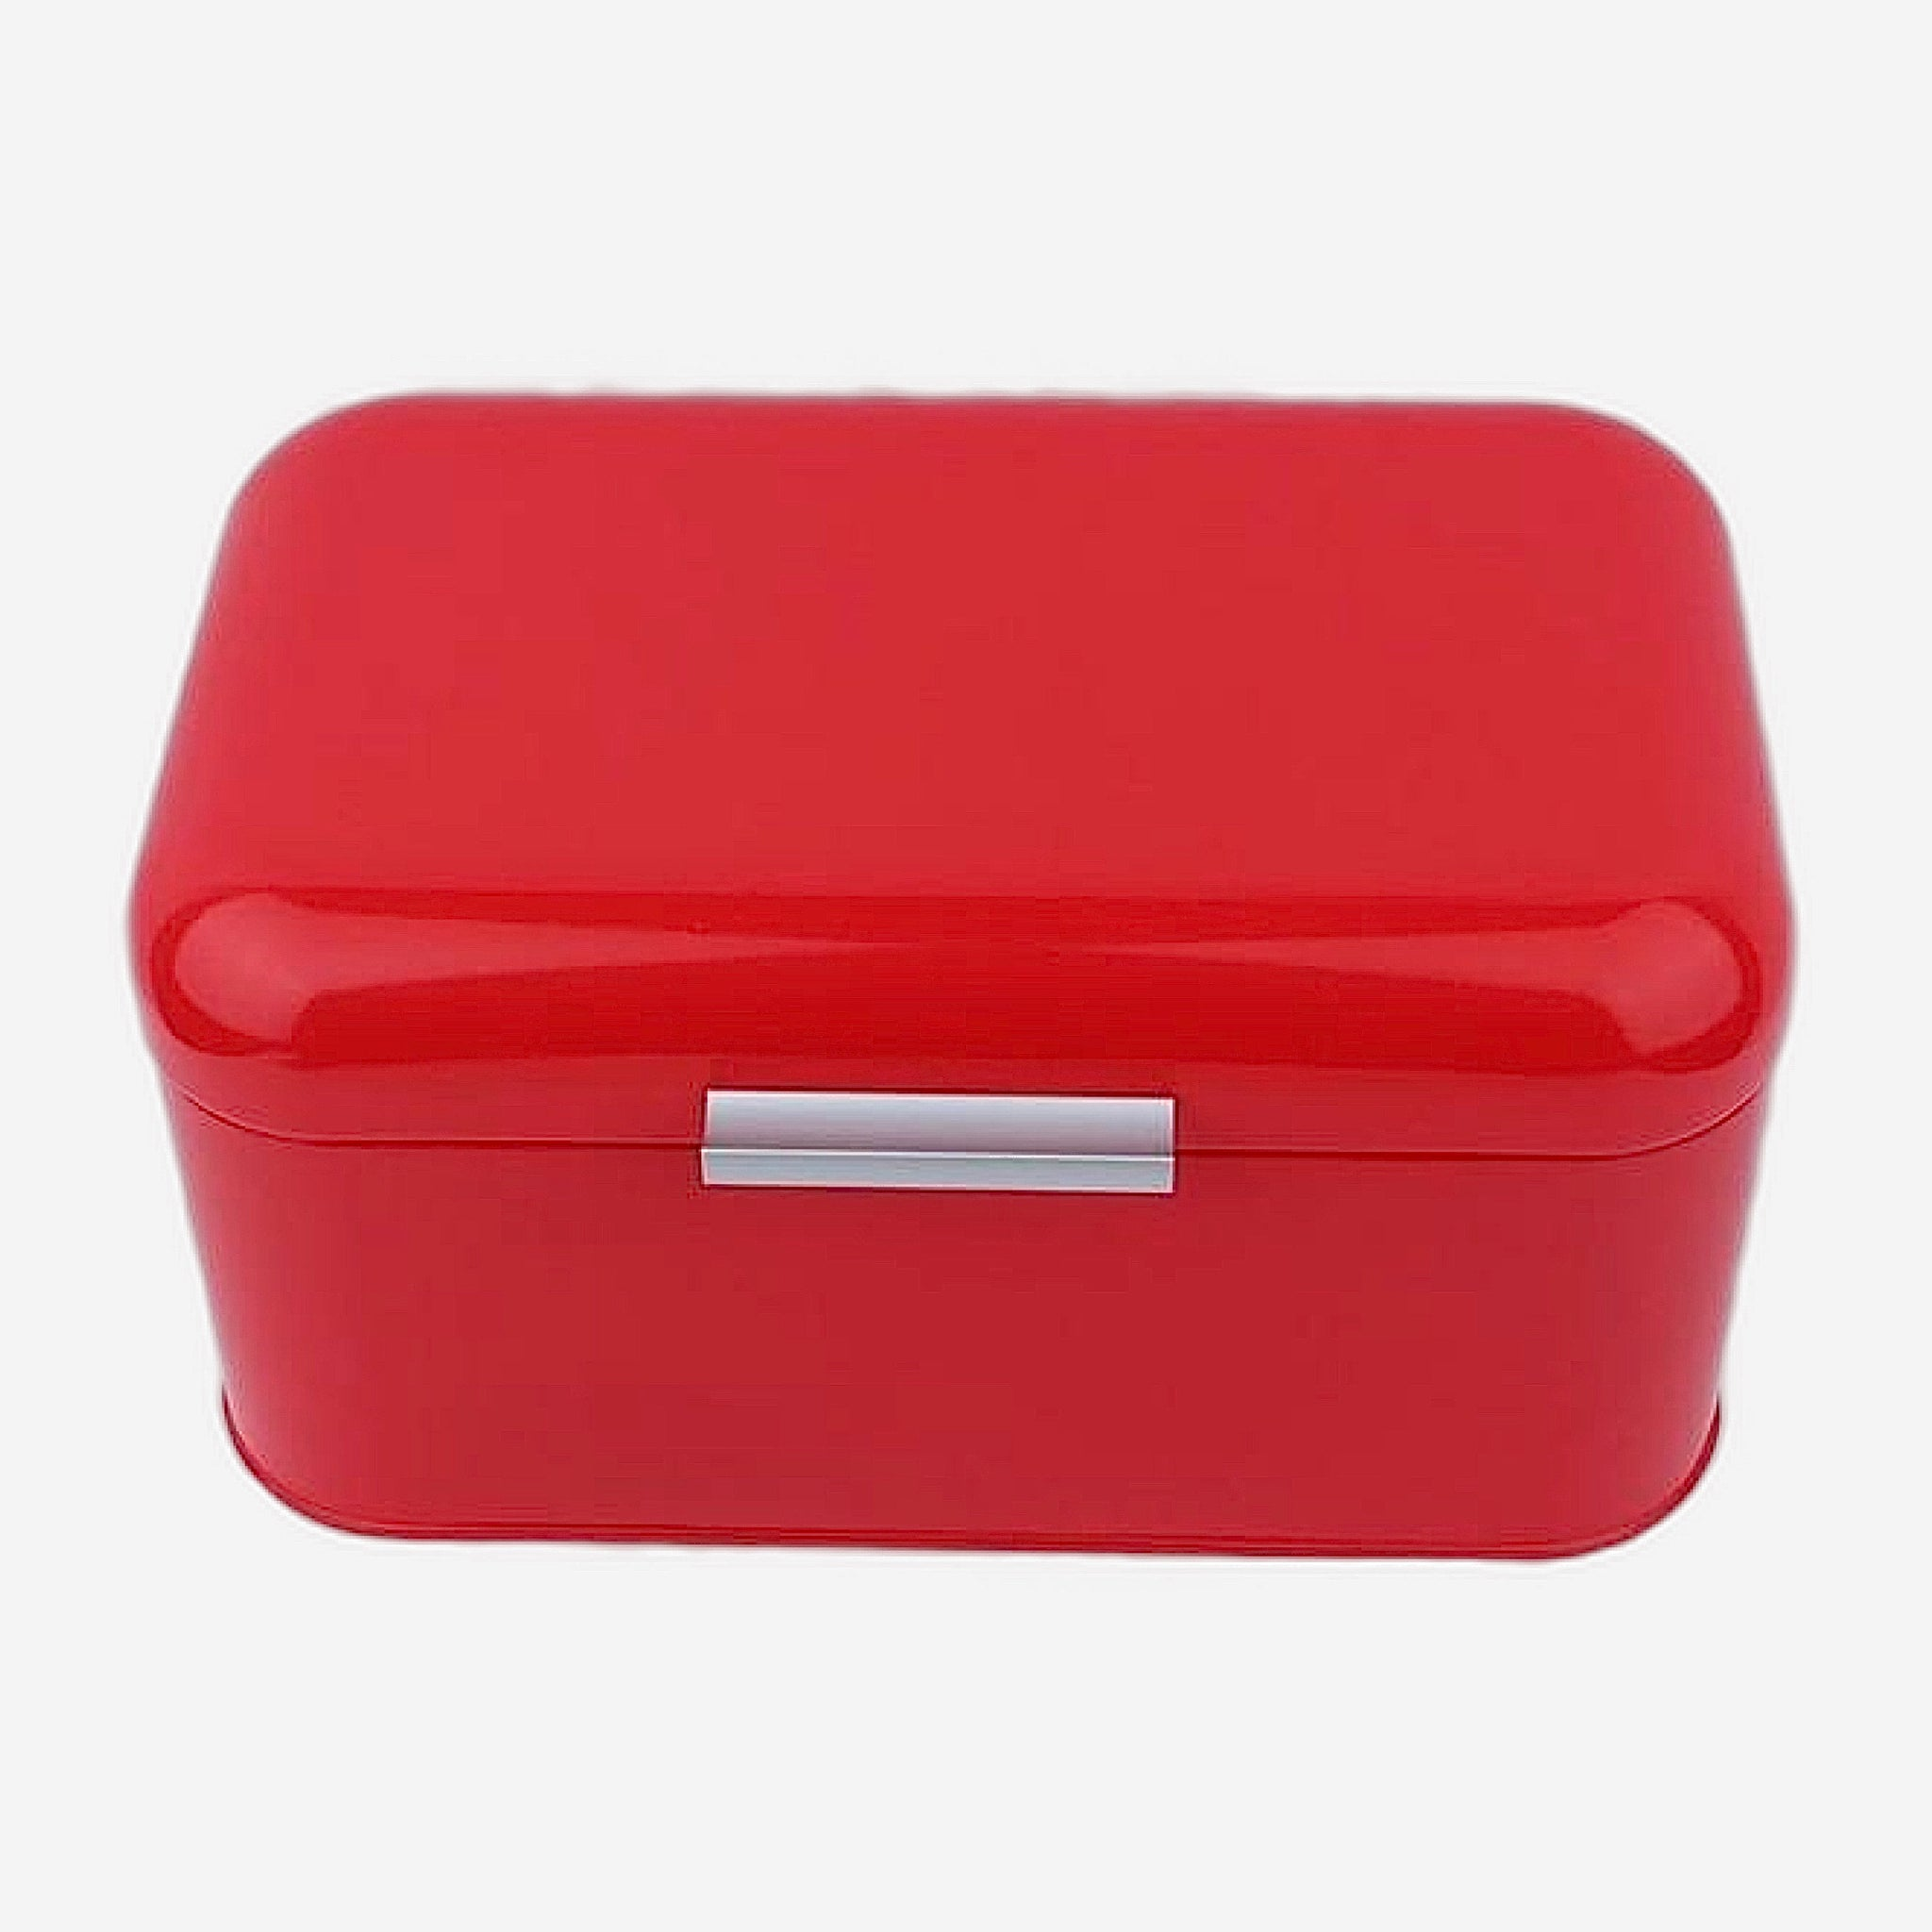 Retro Red Metal Bread Box Bread Storage Organizer Boxes Solid Color Large Capacity Bin Kitchen Storage Container Trending Style